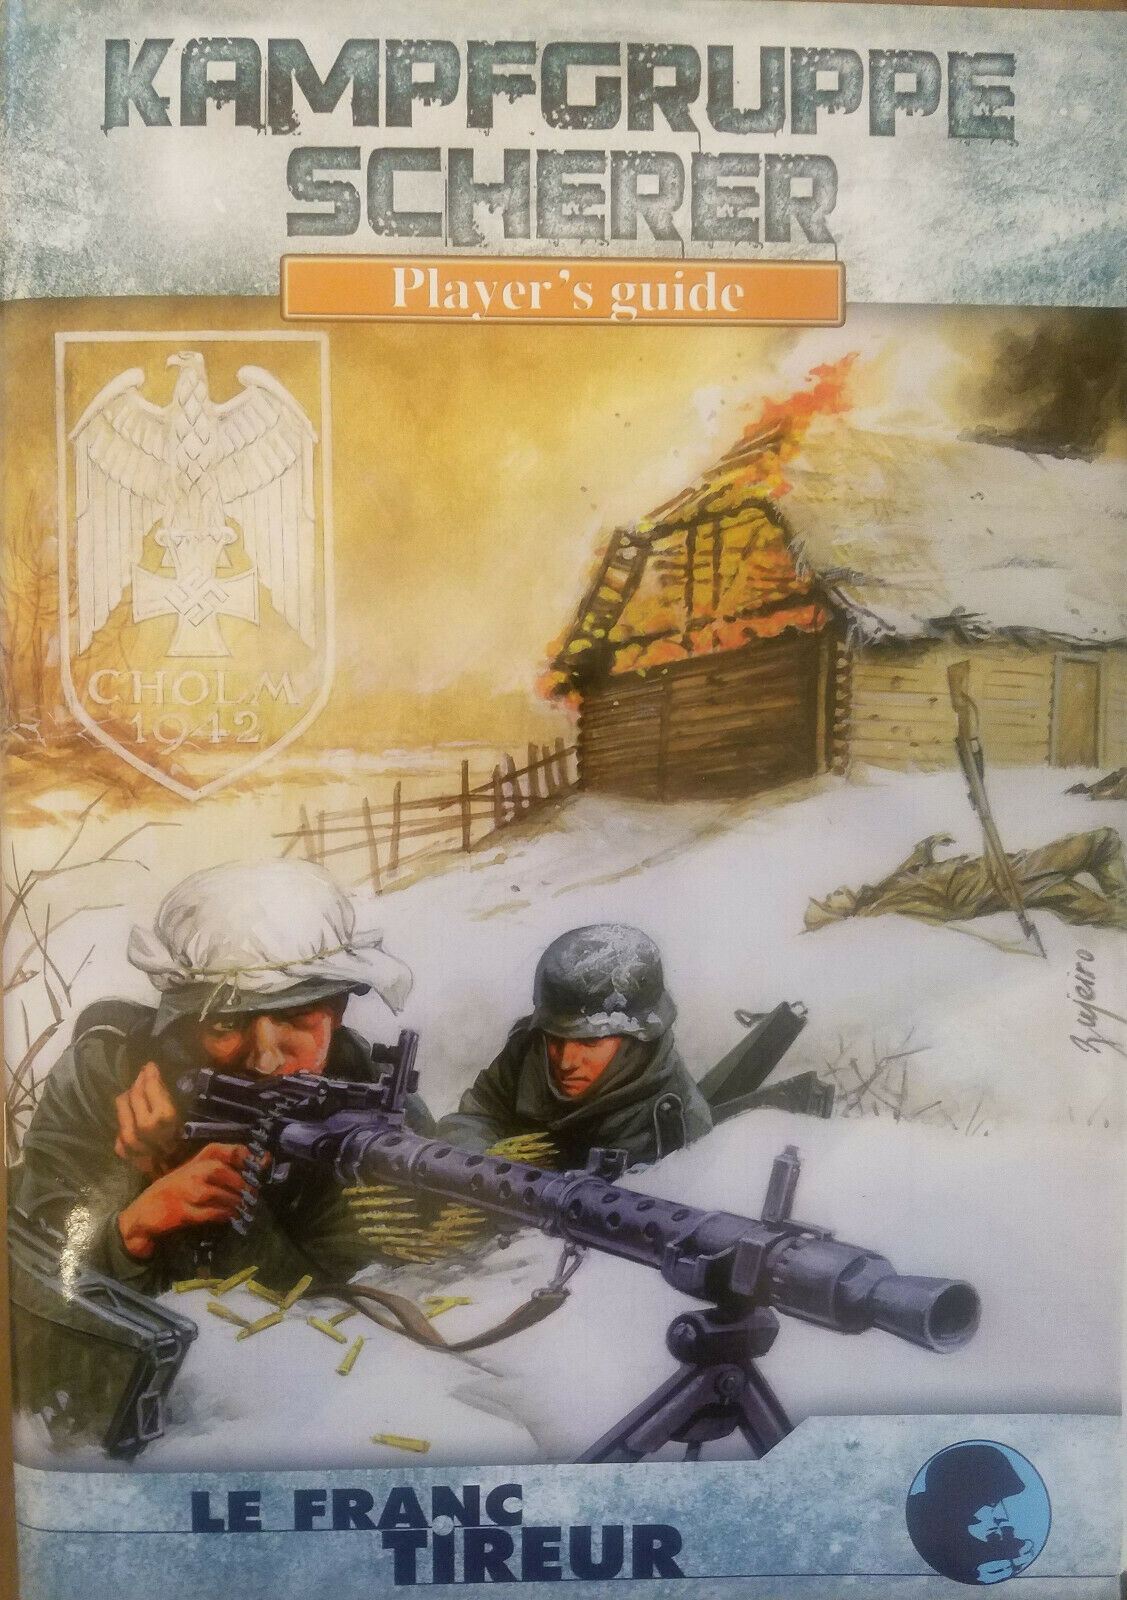 Tumble Advanced Squad Leader Lft Kampfgruppe Scherer, Player's Guide, English